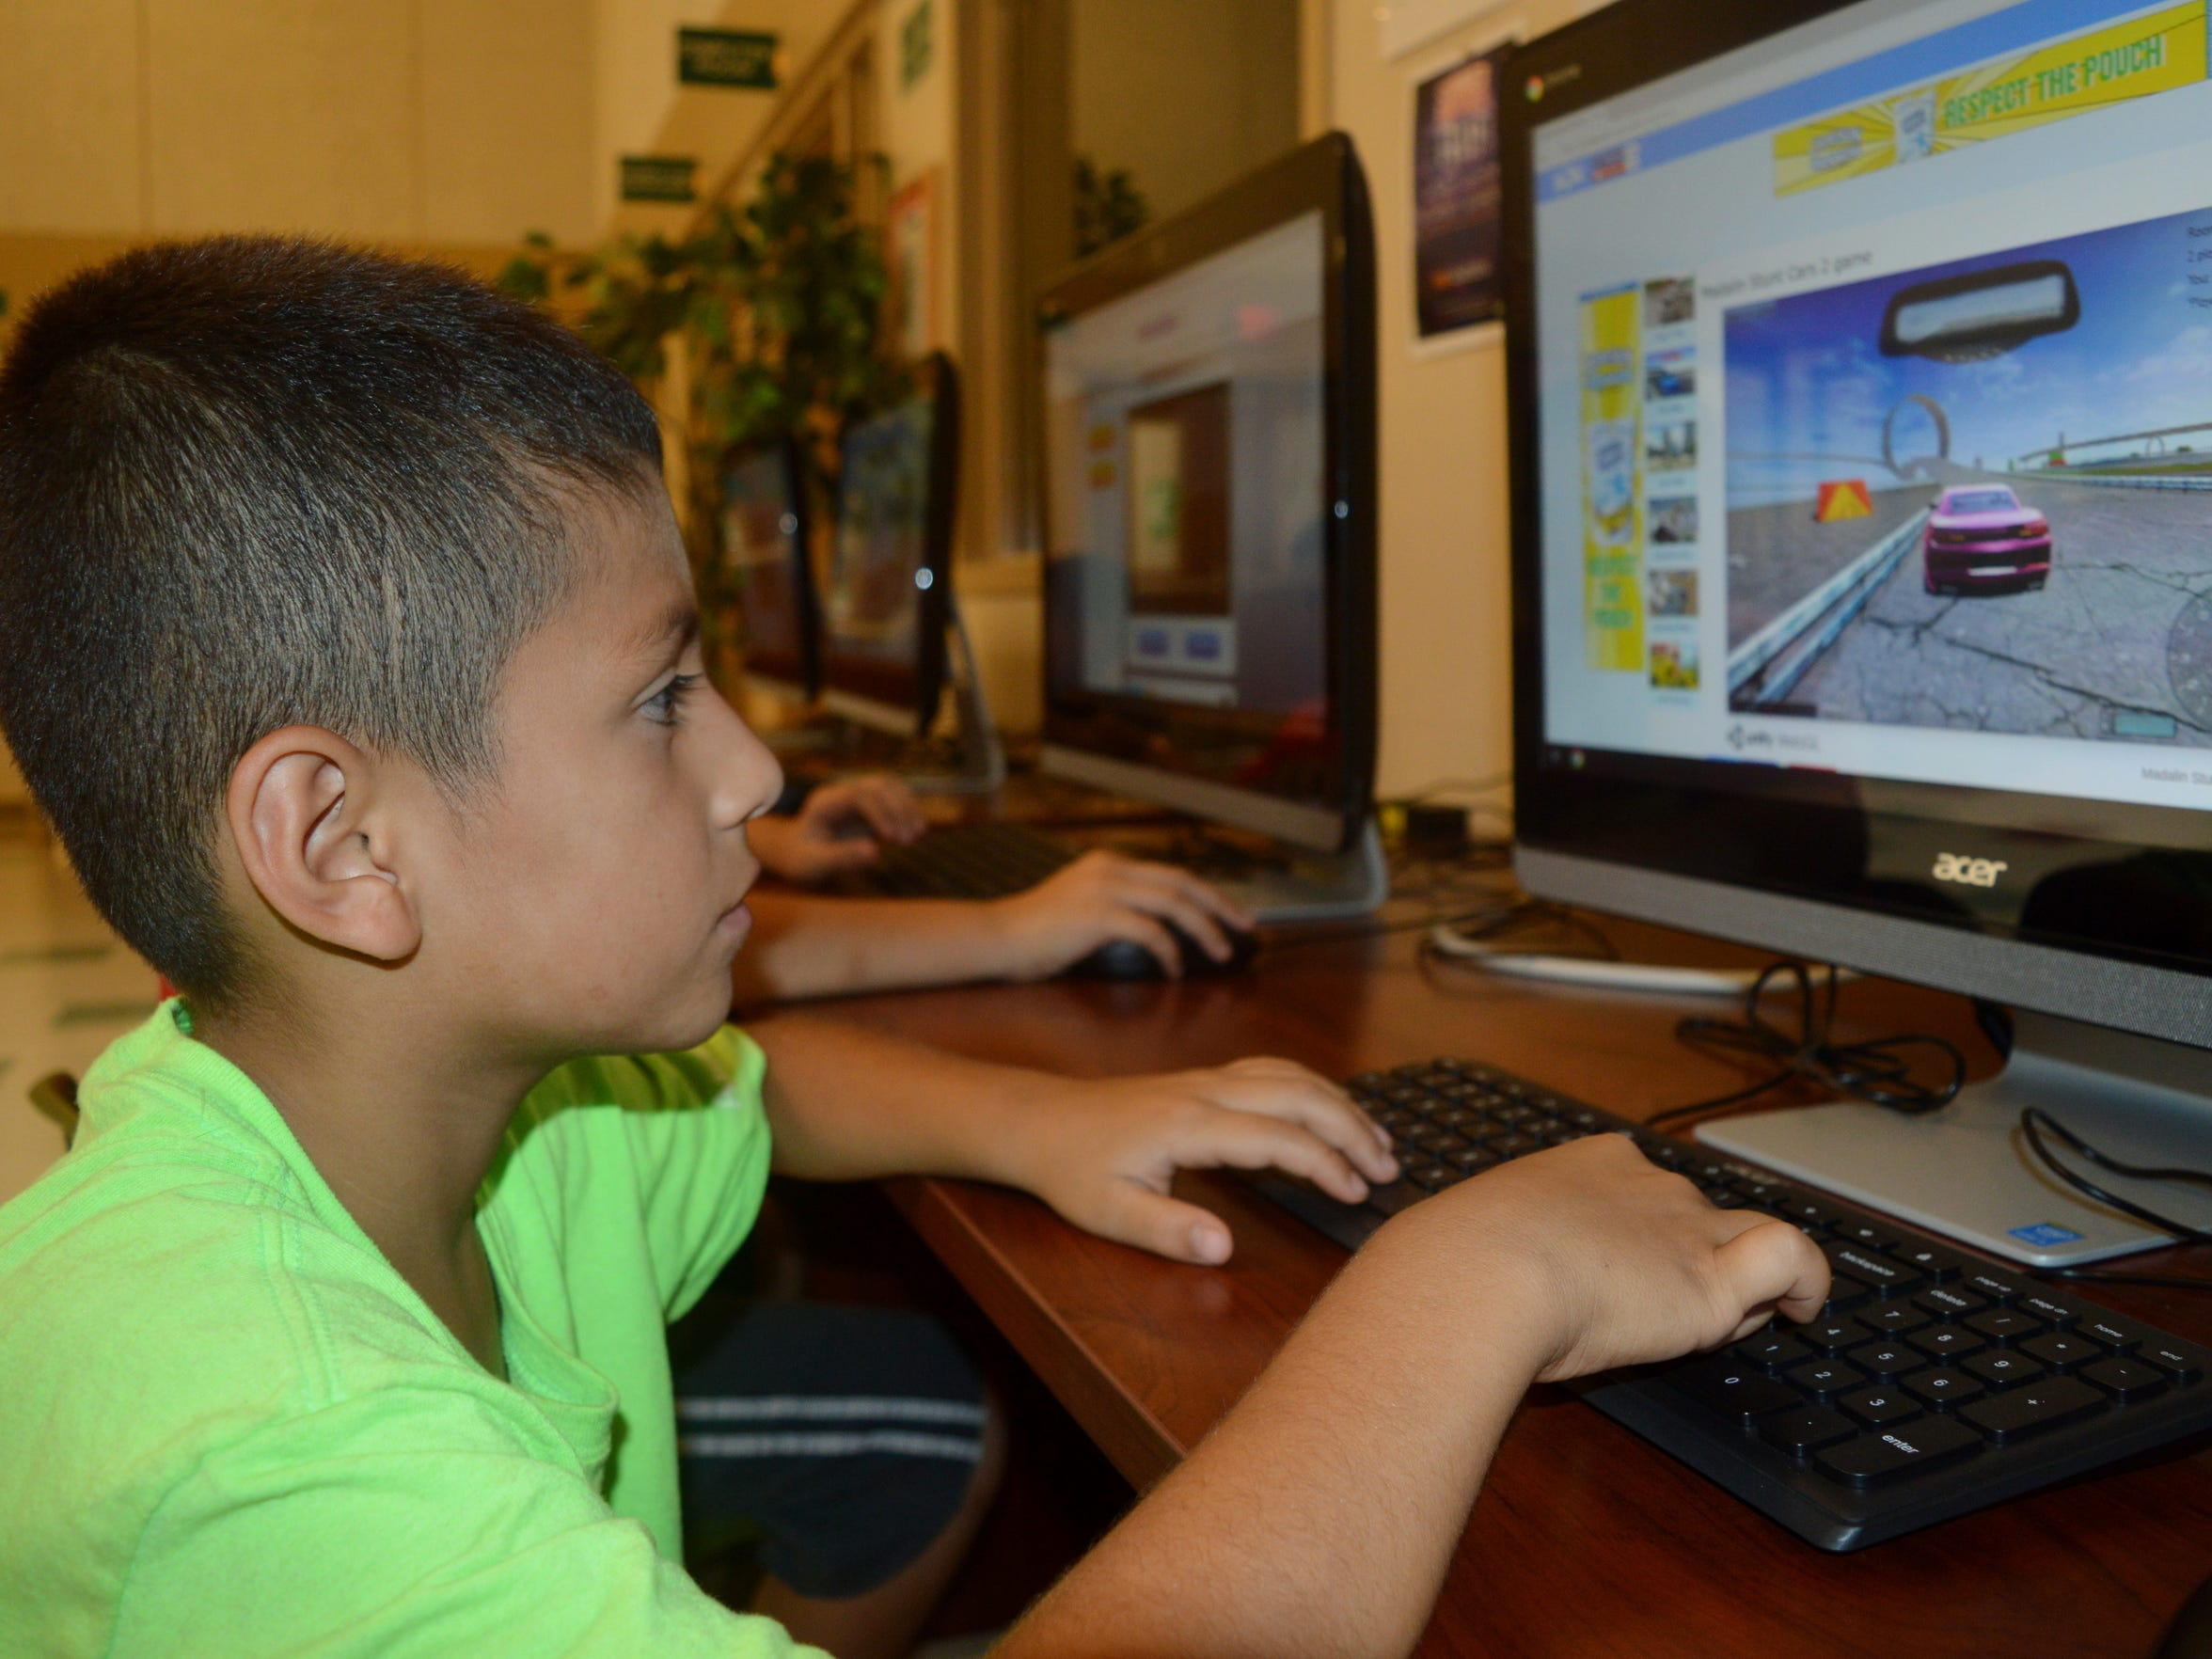 Ismael Cuevas plays a computer game on the last day of summer vacation at the Tulare Boys and Girls Club.